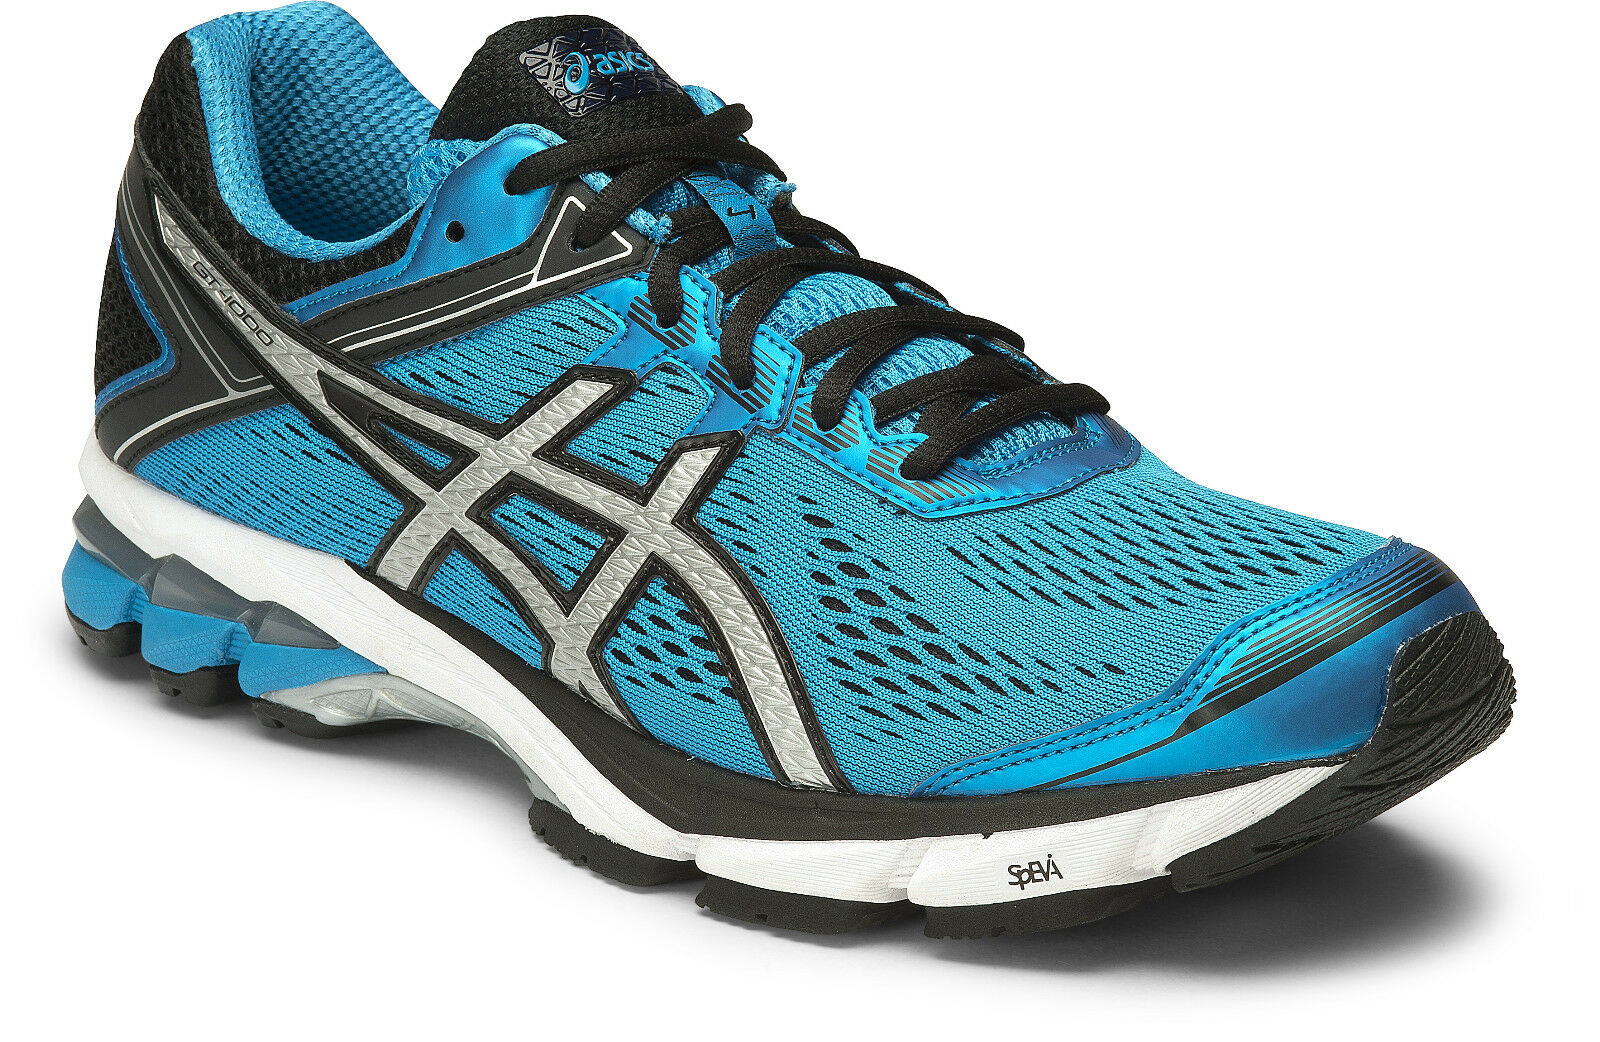 Asics GT 1000 4 Mens Running shoes (2E) (4293) (4293) (4293) + Free Aus Delivery  c59b5c